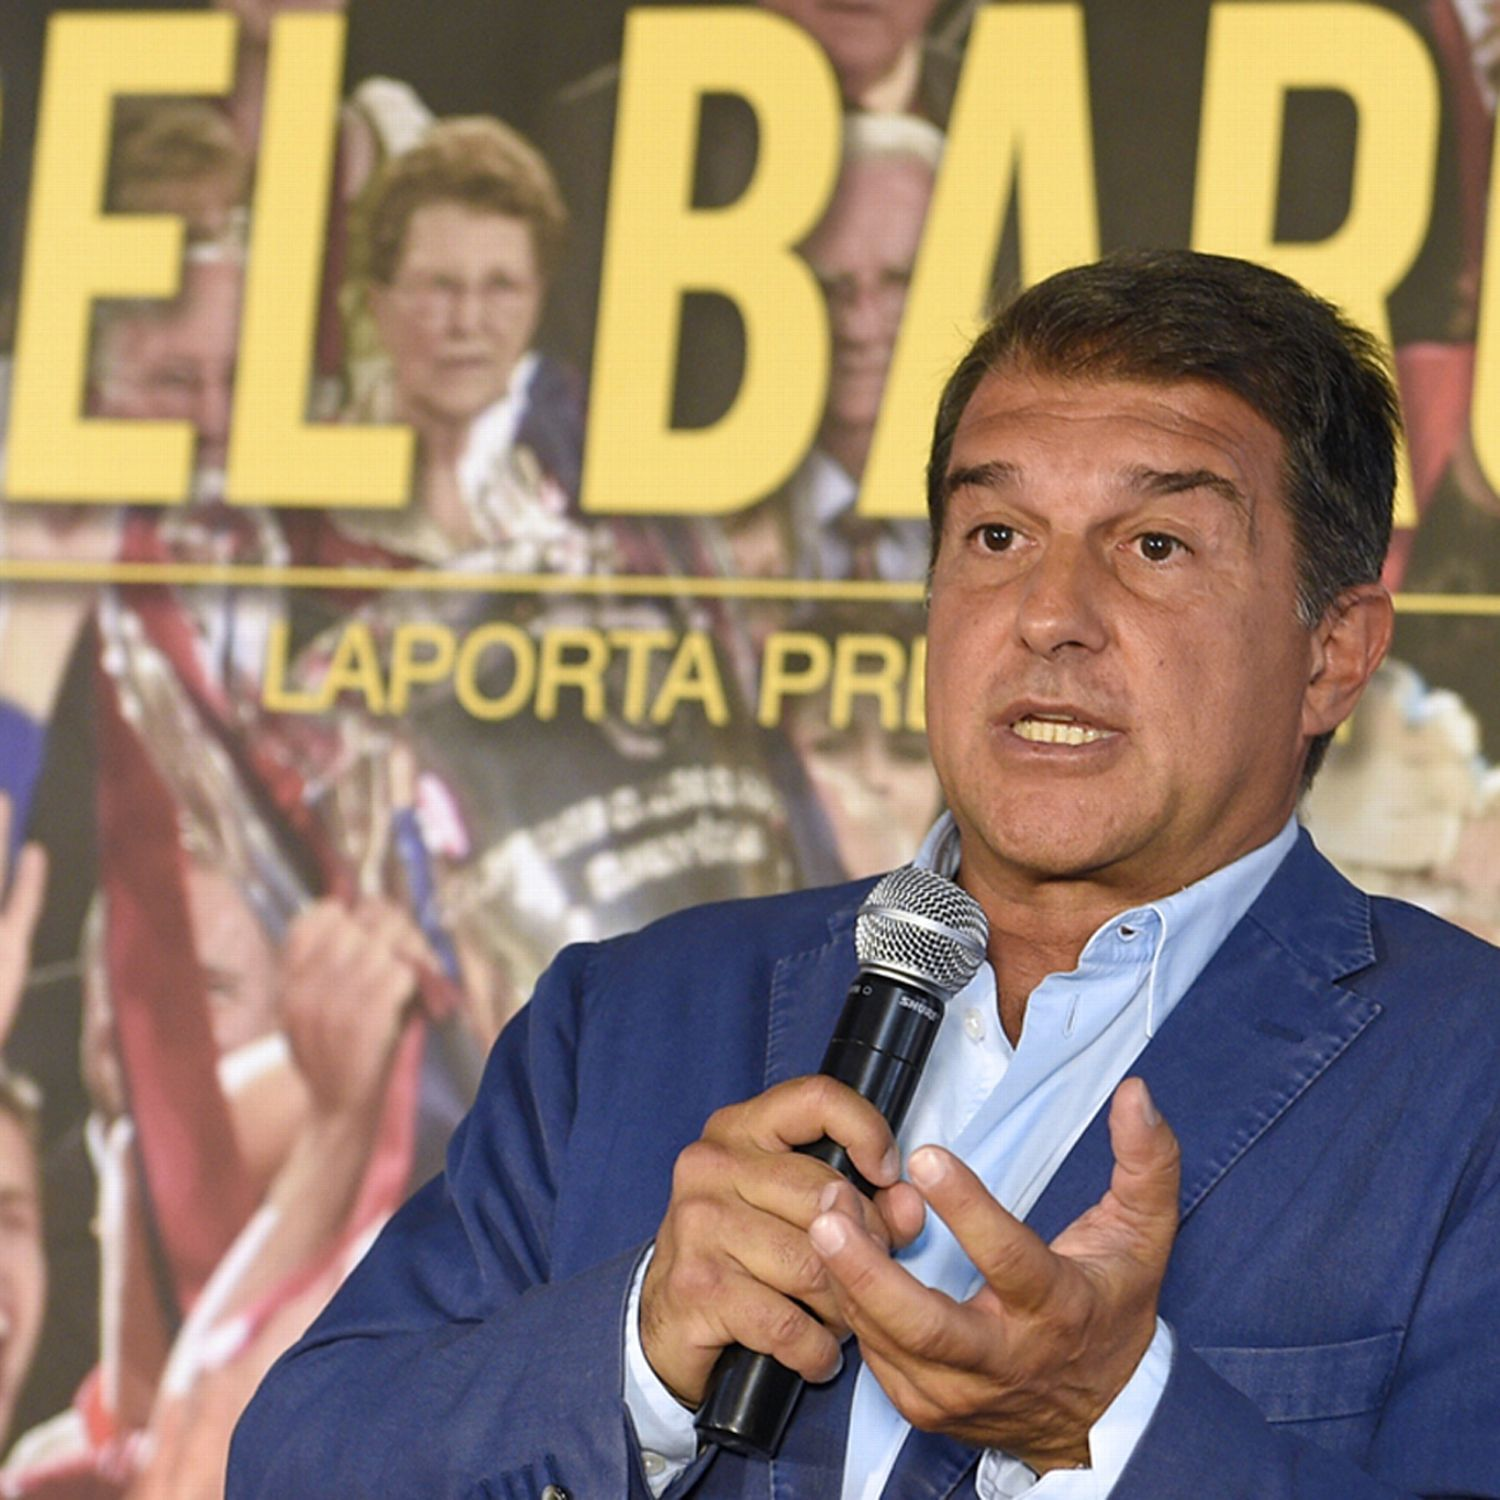 Barcelona failed to support Lionel Messi at tax fraud trial - Joan Laporta